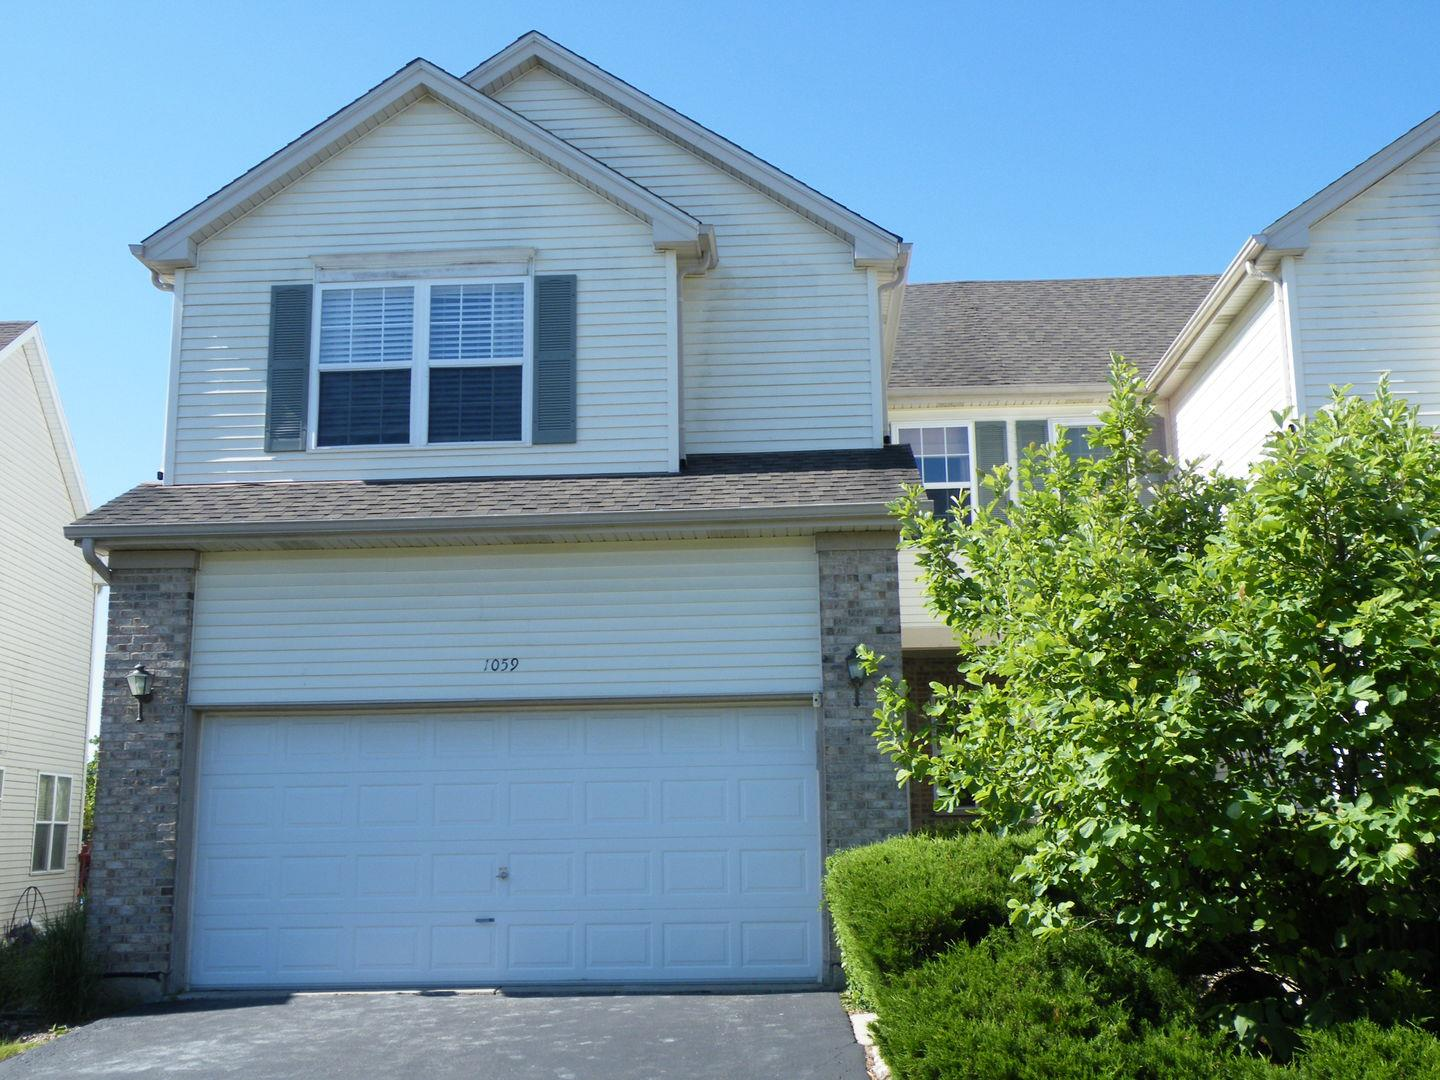 1059 Viewpoint Drive, Lake in the Hills, IL 60156 - #: 10747550